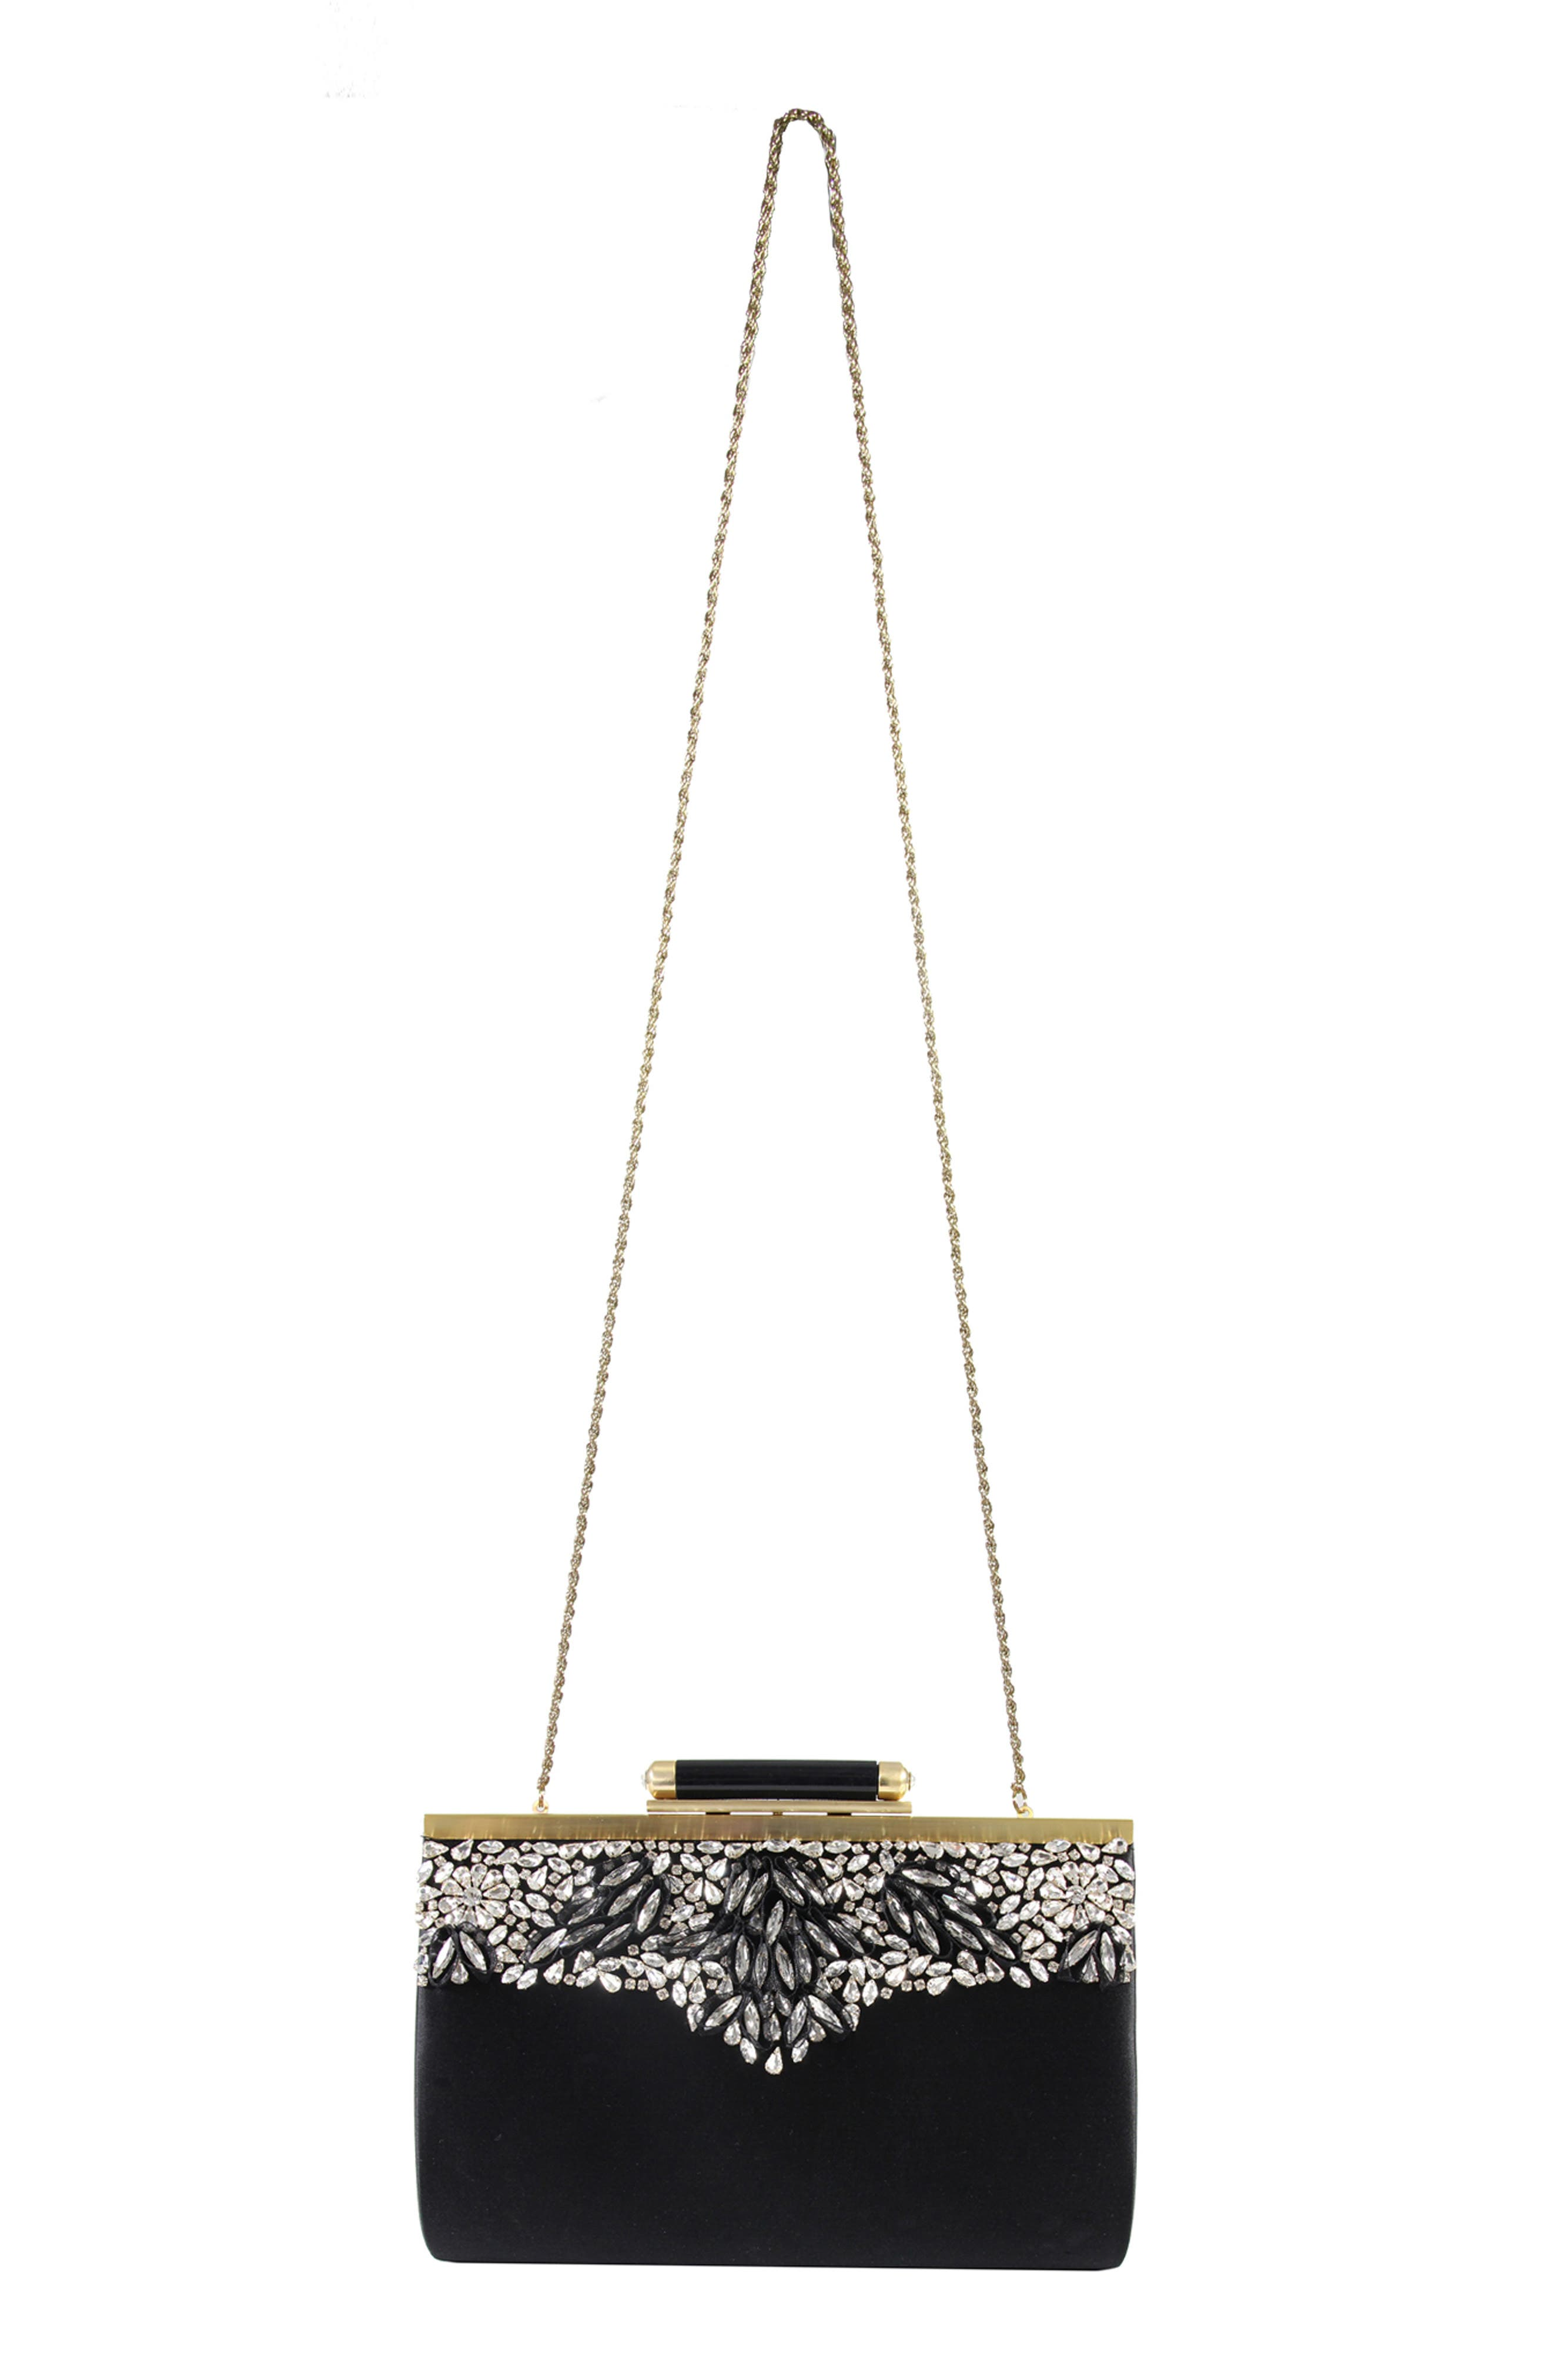 Gala Embellished Frame Clutch,                             Alternate thumbnail 4, color,                             001